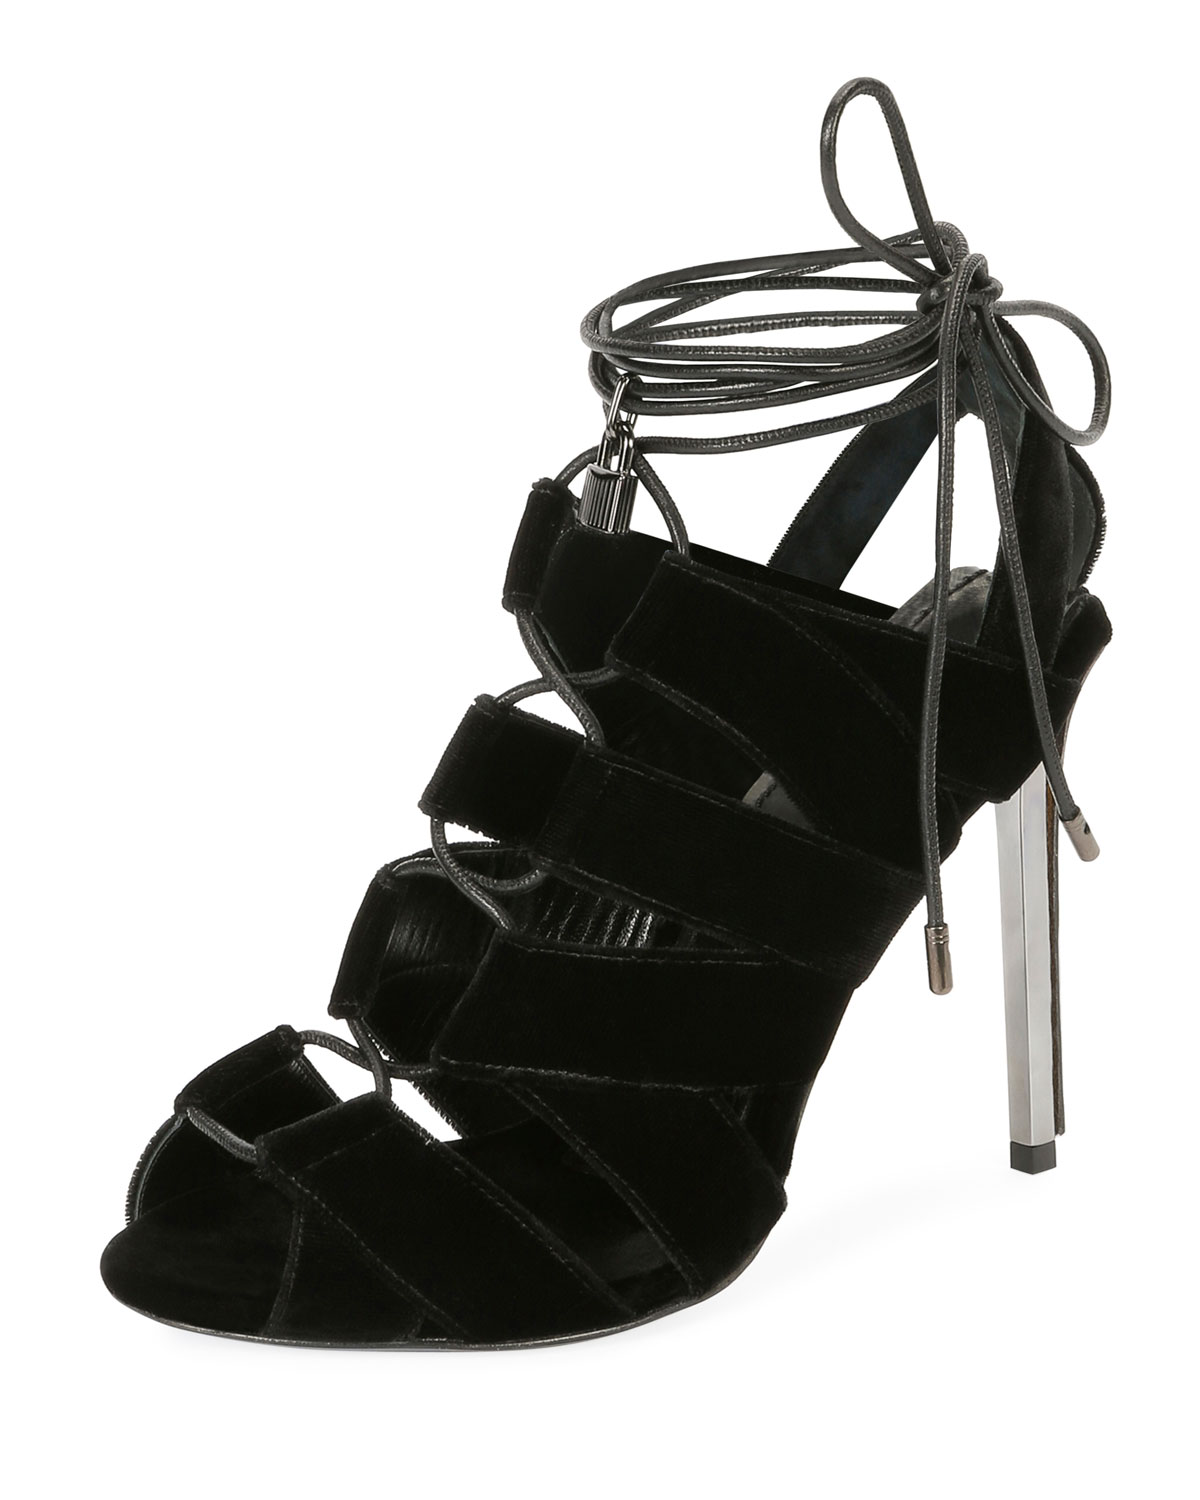 a9b36072ce0 TOM FORD Velvet Cutout Lace-Up Sandals